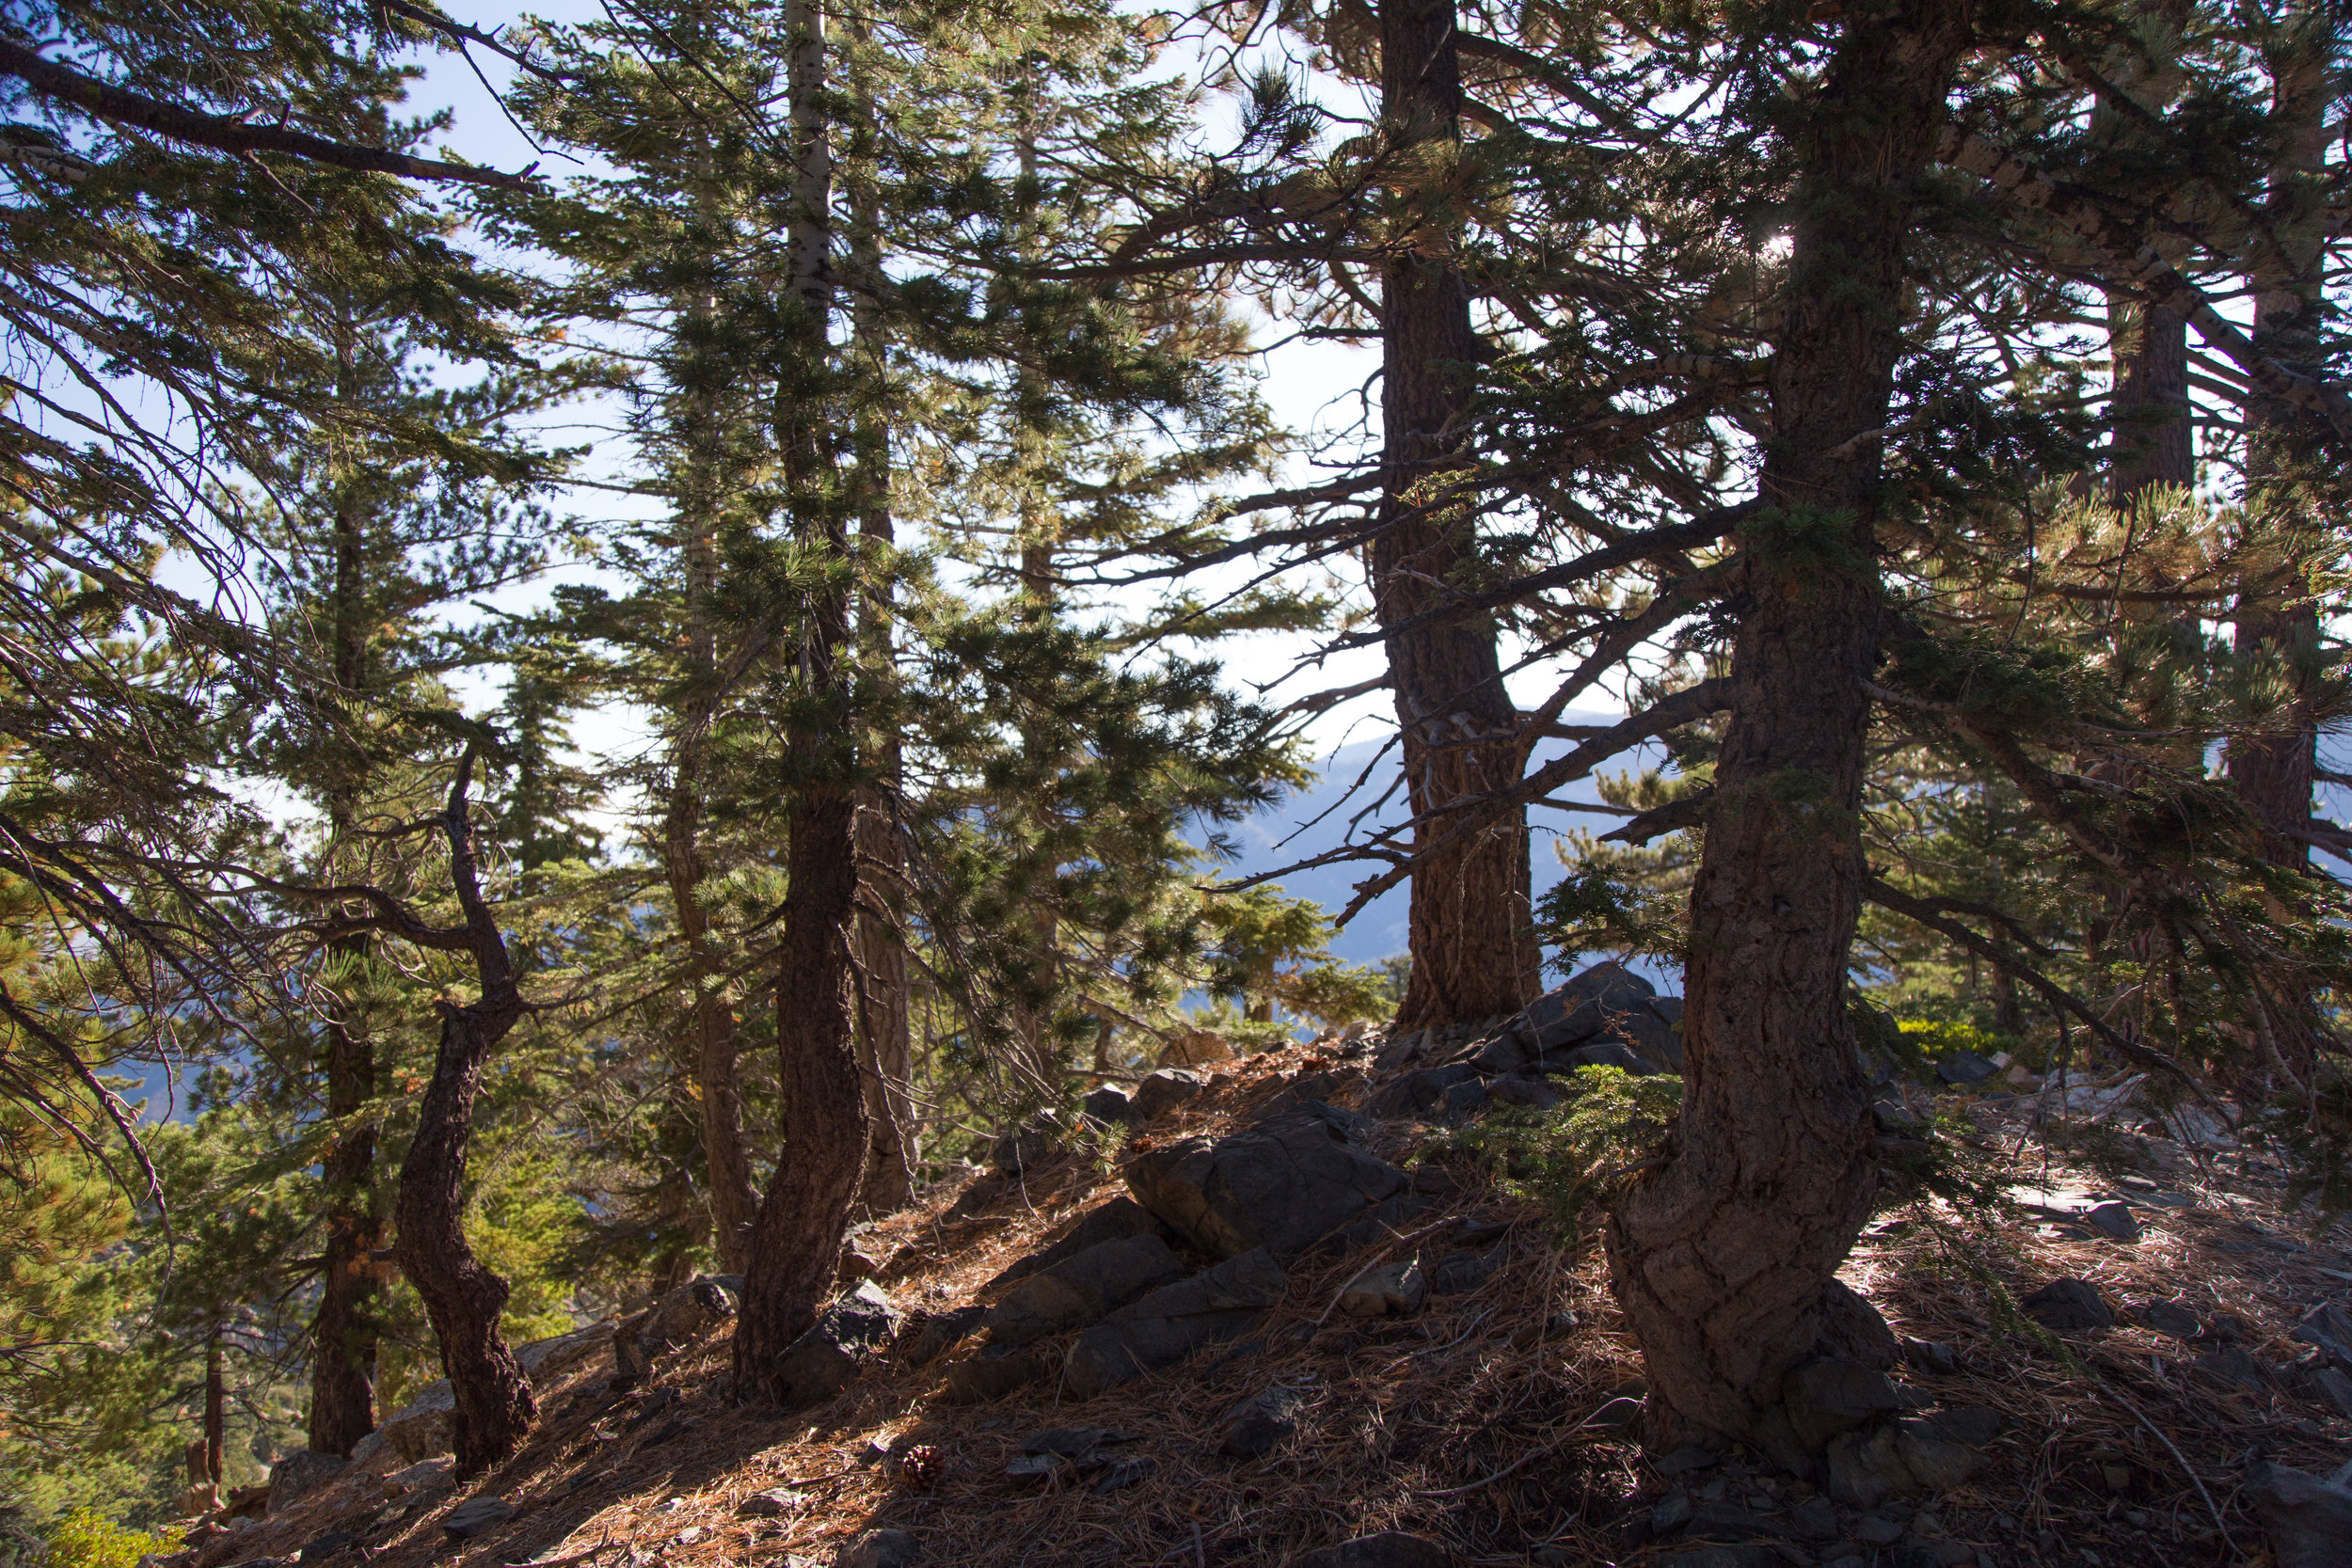 As you get closer to the split between the PCT and the trail to the summit, there is a spur trail that takes you to a little pine grove. I climbed up and took some photos. It's a nice place to stop and take a break or have a picnic.